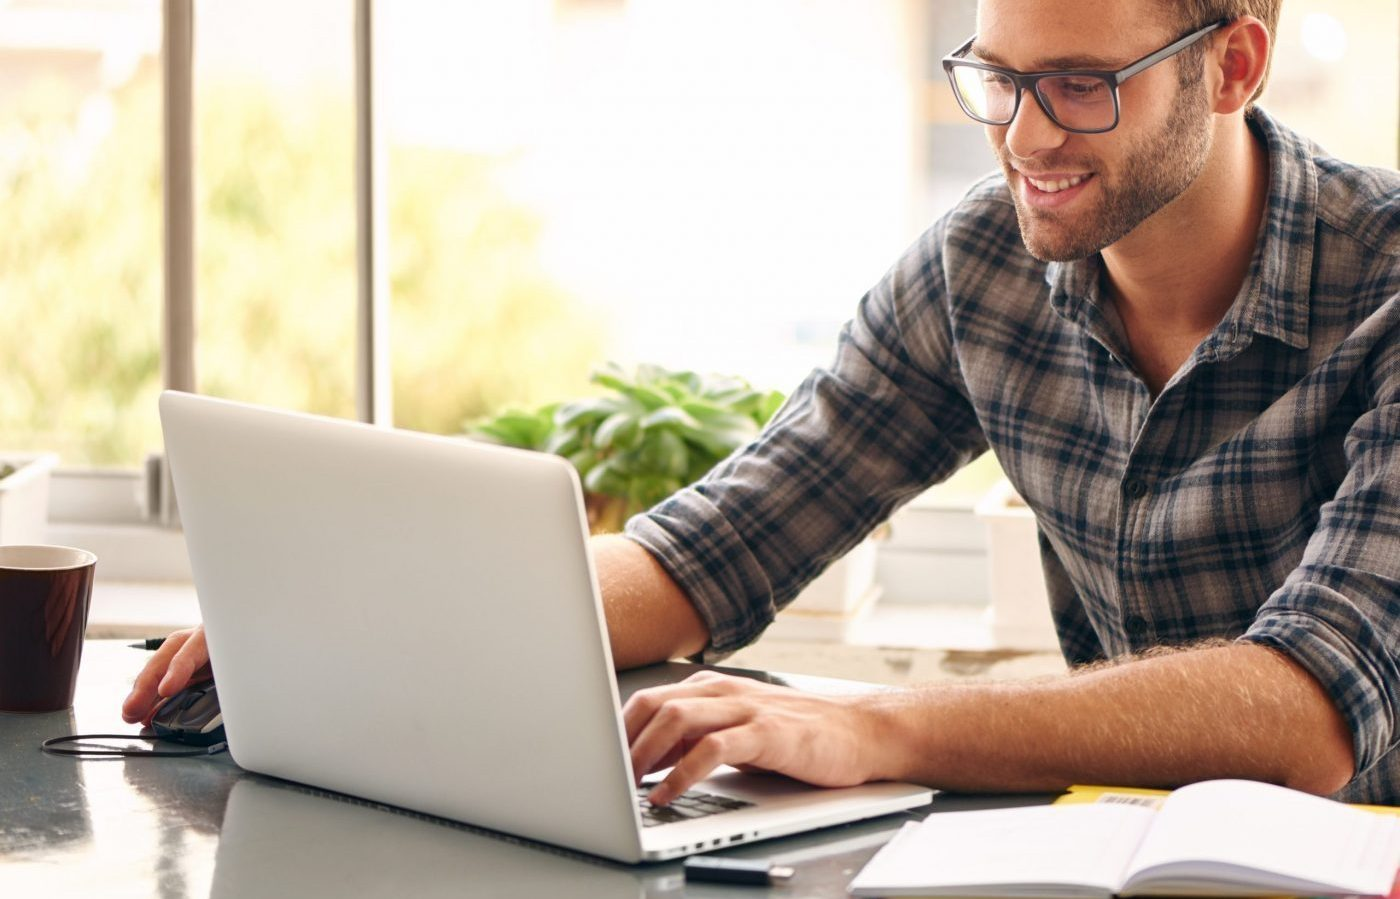 Happy young man, wearing glasses and smiling, as he works on his laptop with his cup of coffee